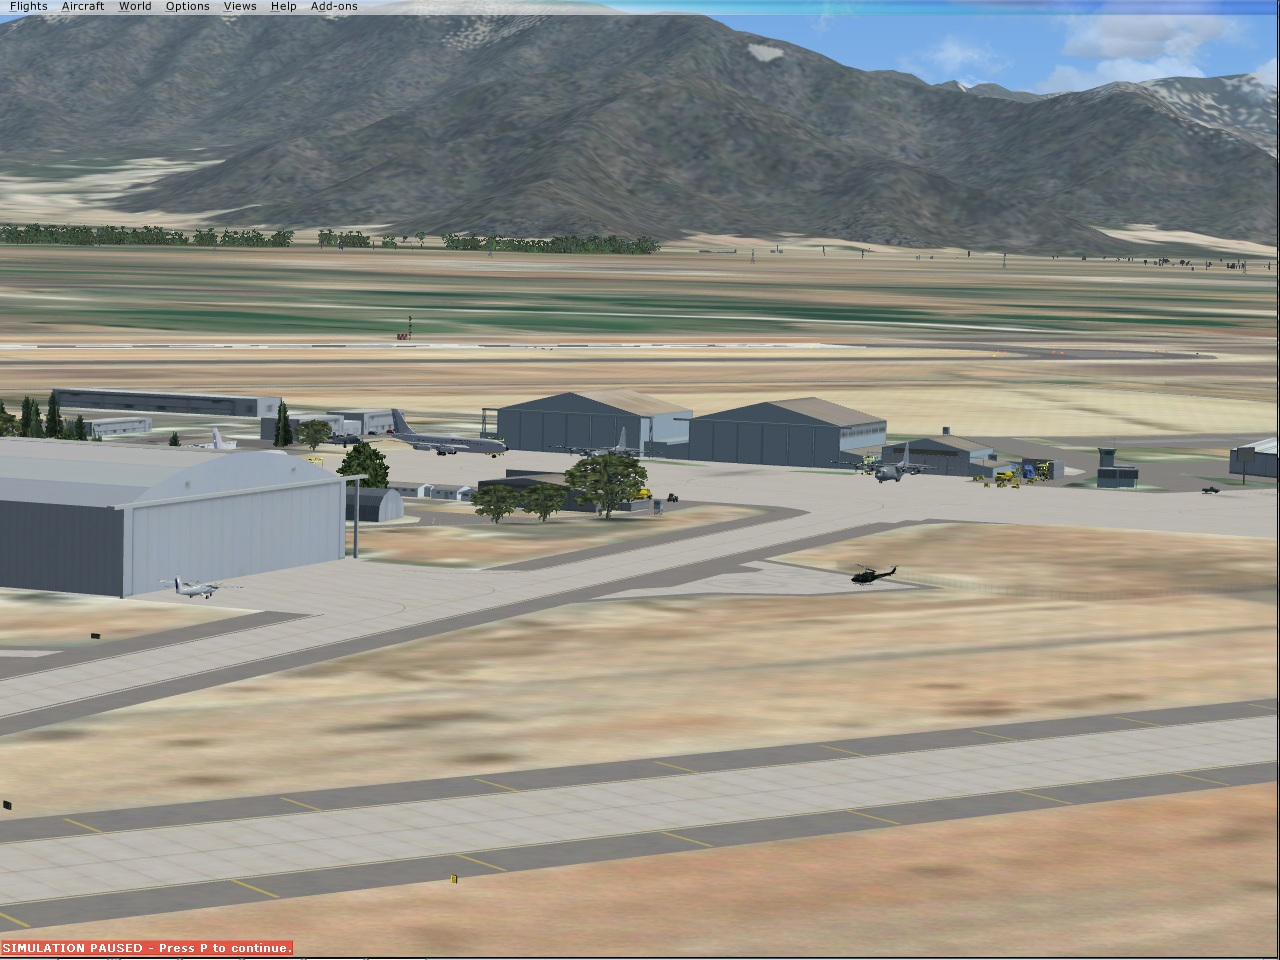 CHILE AIRPORTS 3D - ARTURO MERINO BENITEZ INTERNATIONAL AIRPORT SANTIAGO CHILE SCEL 2017 FSX P3D4